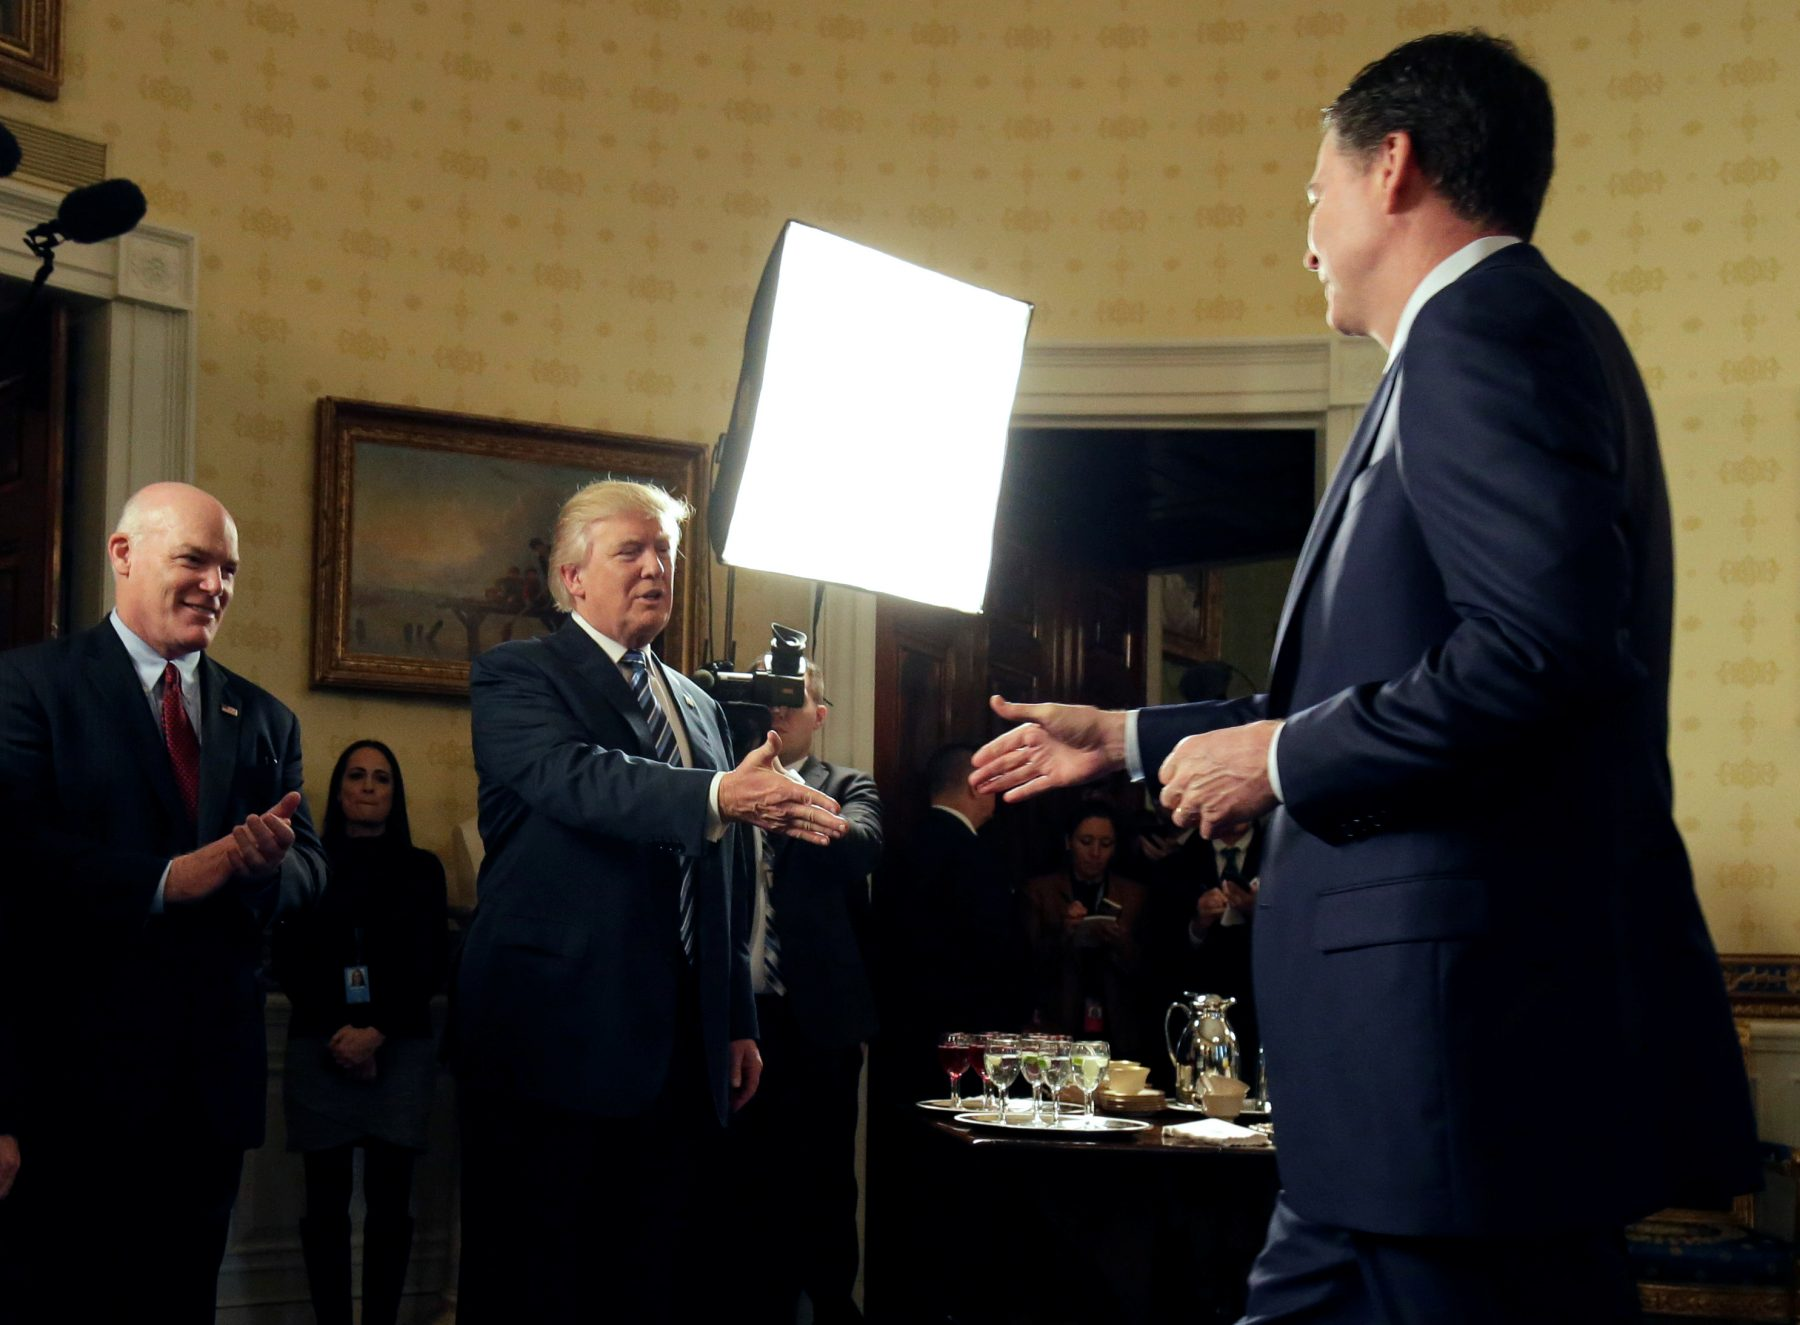 This January file photo shows President Donald Trump greeting Director of the FBI James Comey as Director of the Secret Service Joseph Clancy (L) watches during the Inaugural Law Enforcement Officers and First Responders Reception in the Blue Room of the White House. Photo by      REUTERS/Joshua Roberts.